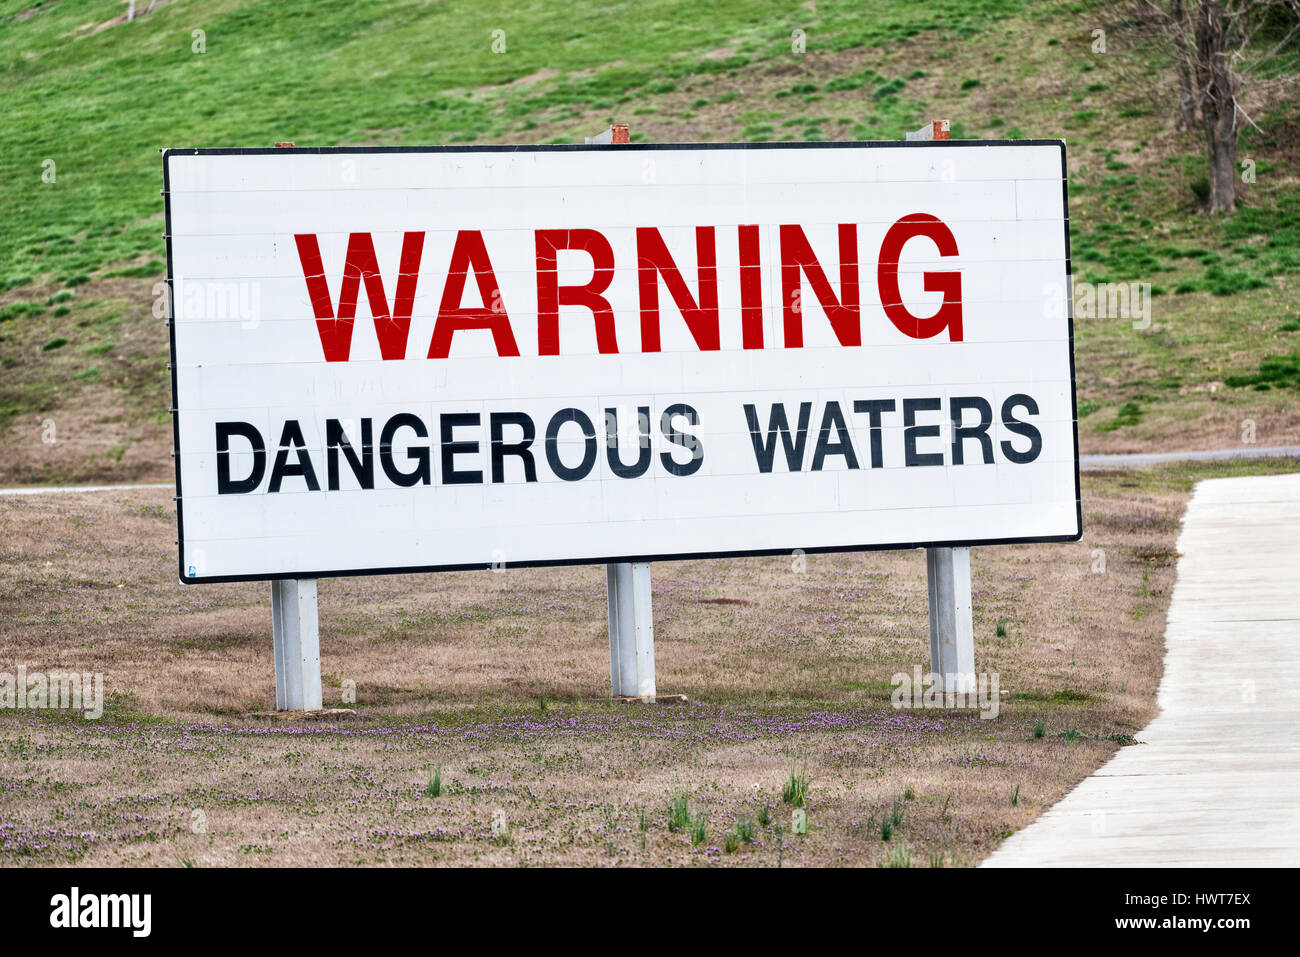 A big sign near a hydroelectric dam in Tennessee warns boaters, swimmers and others of the dangerous waters below. - Stock Image